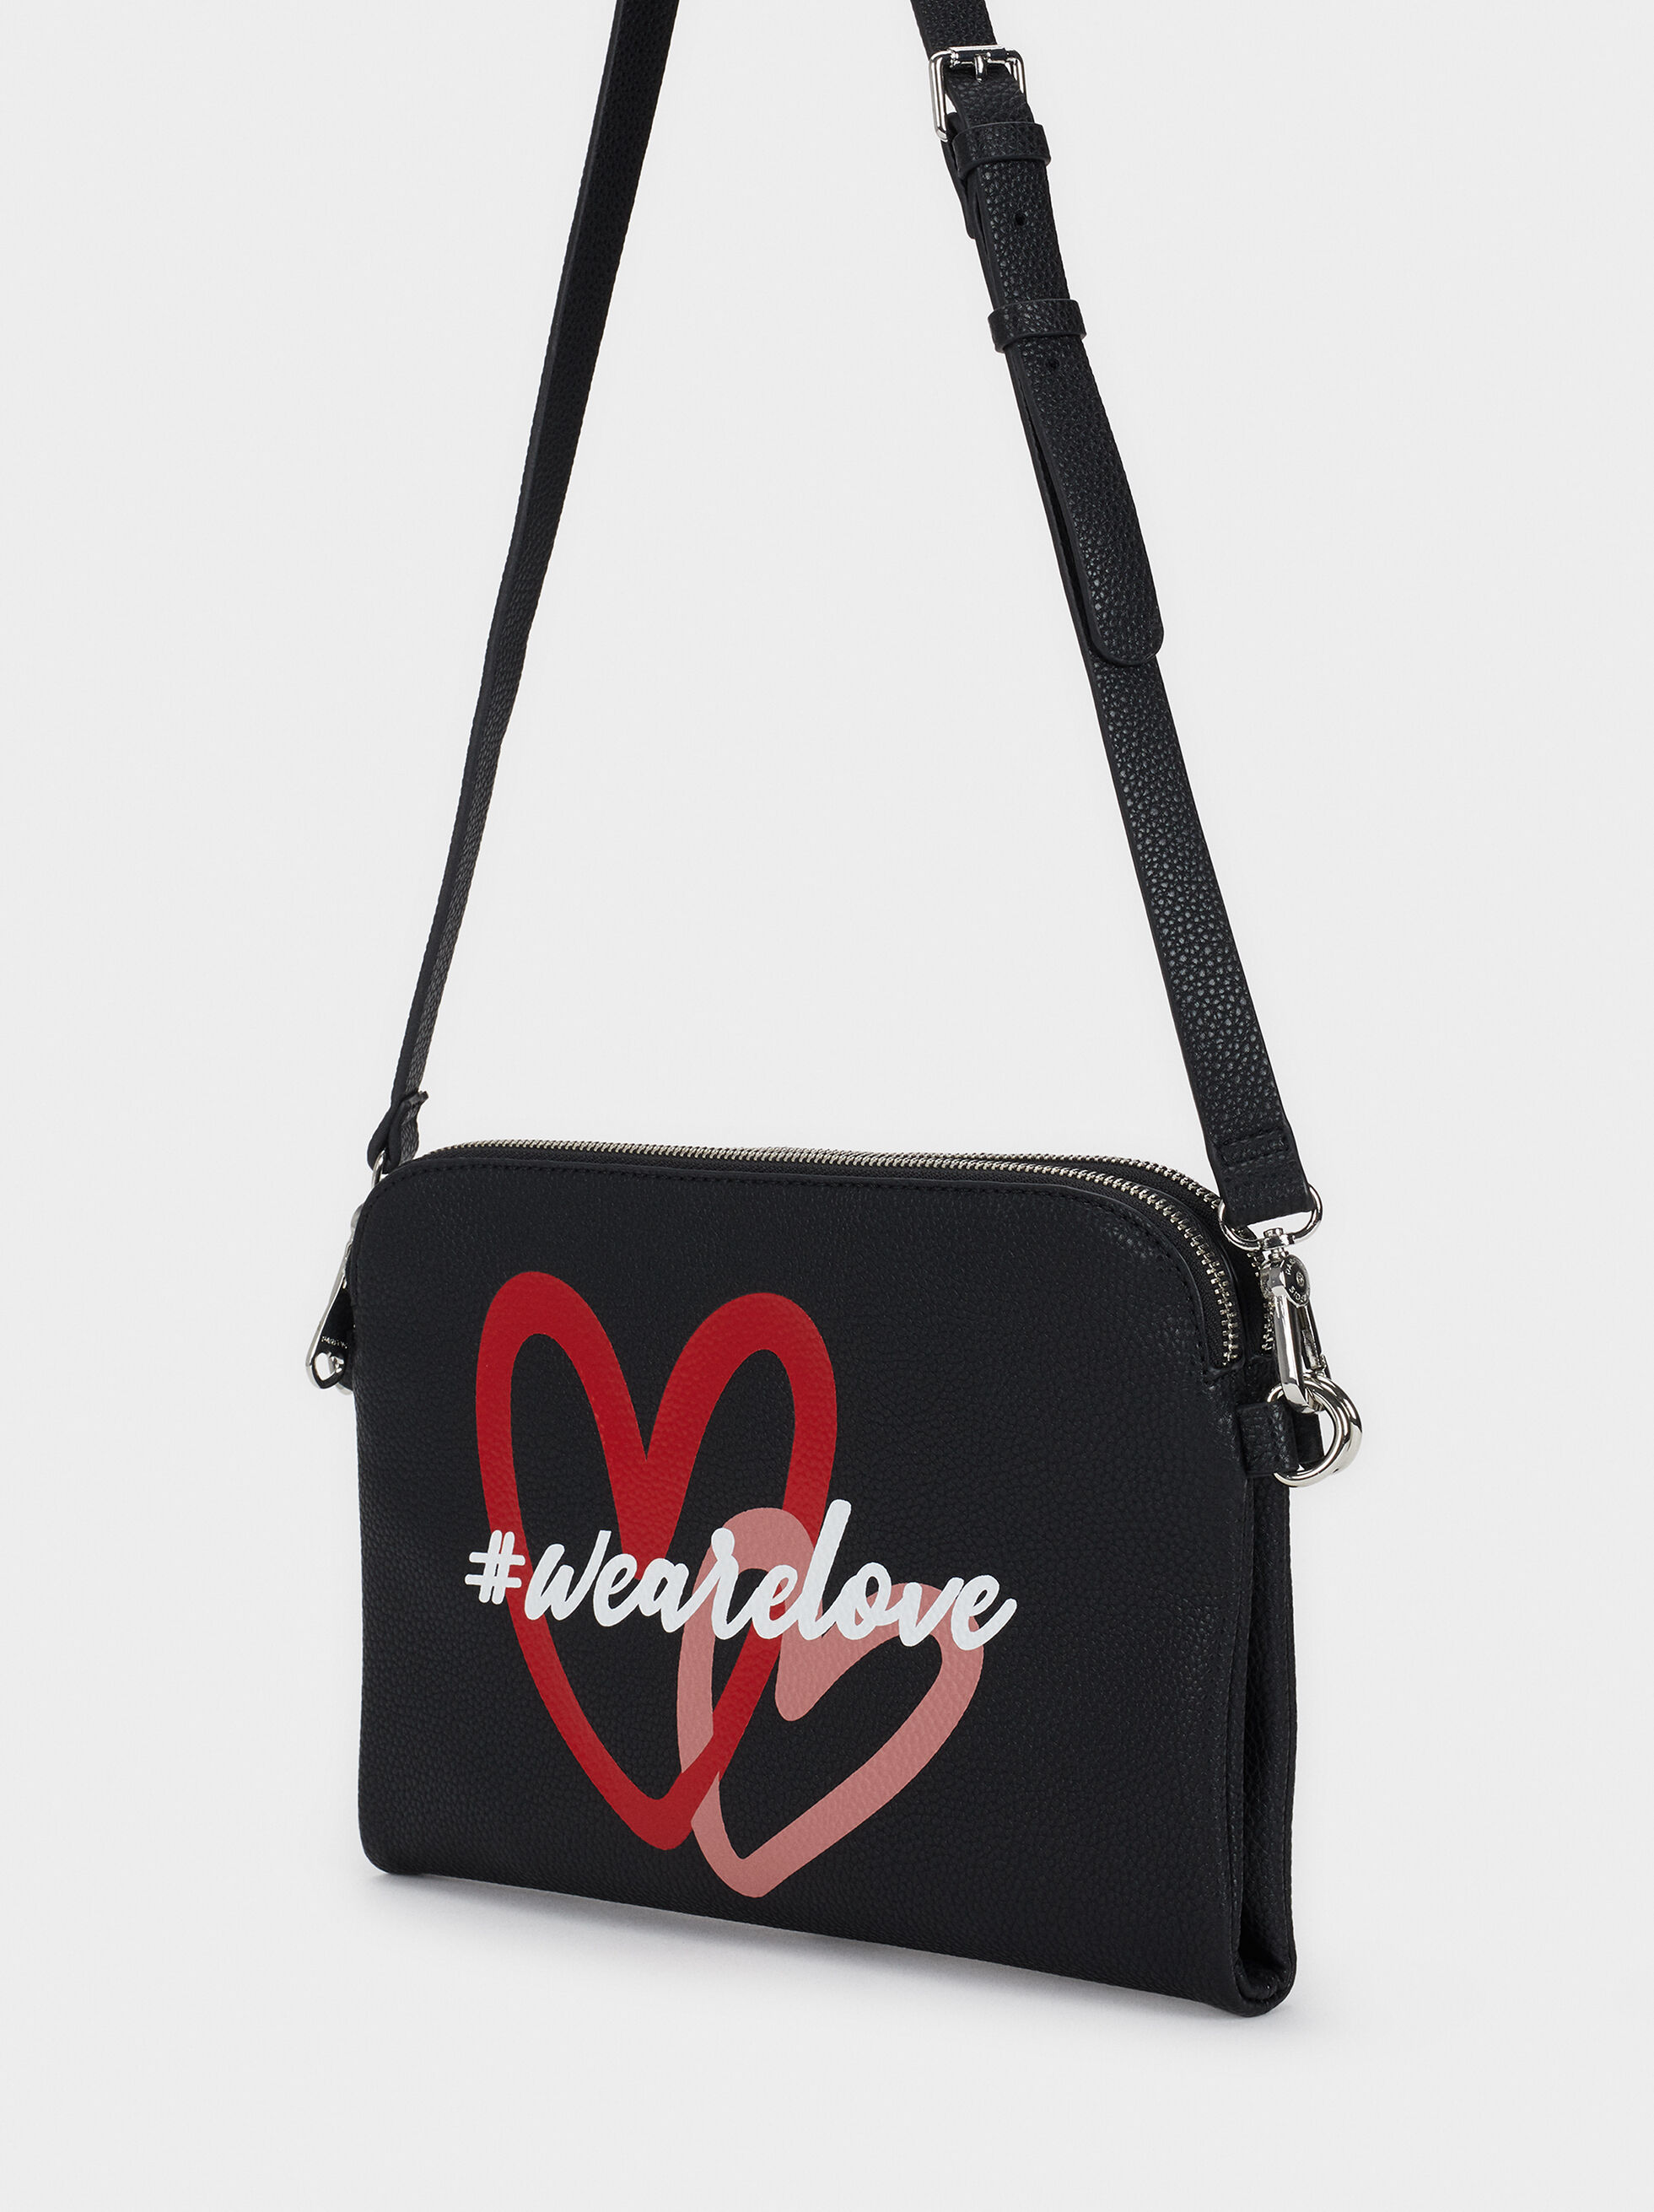 We Are Love Print Shoulder Bag, Black, hi-res